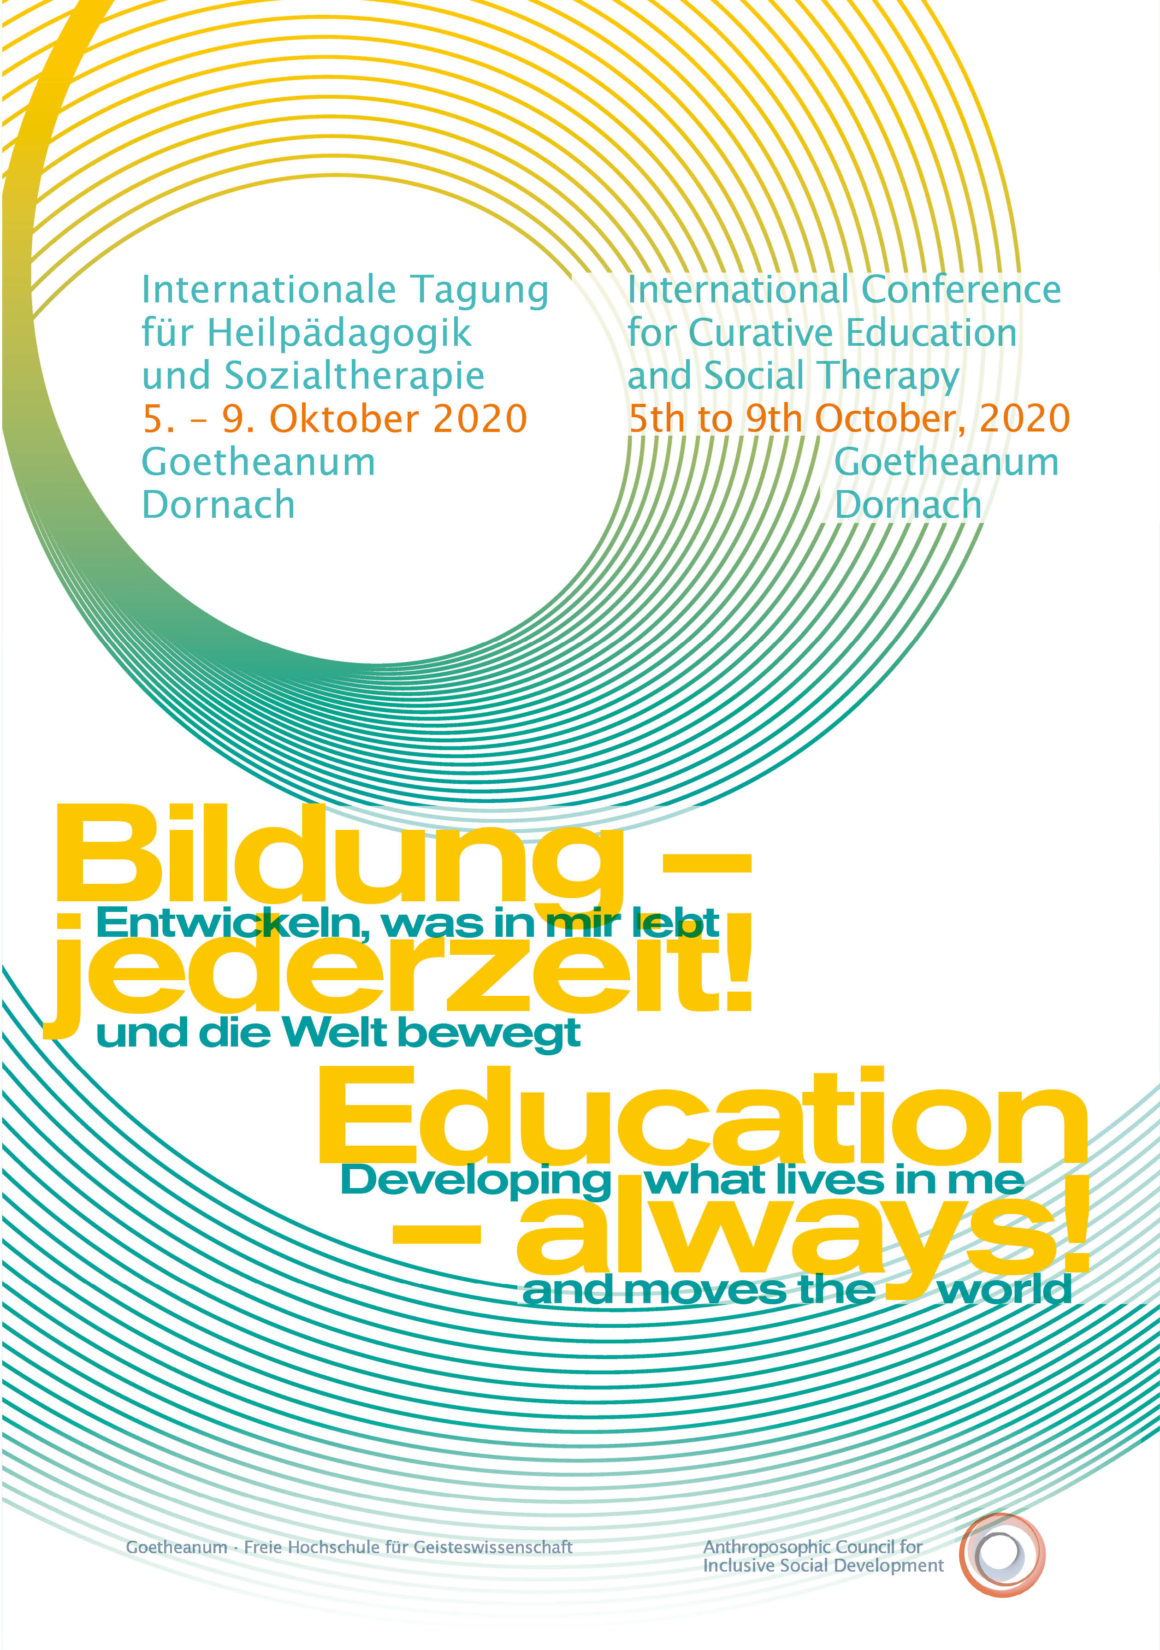 International Conference 2020: Videos of the lectures now available!